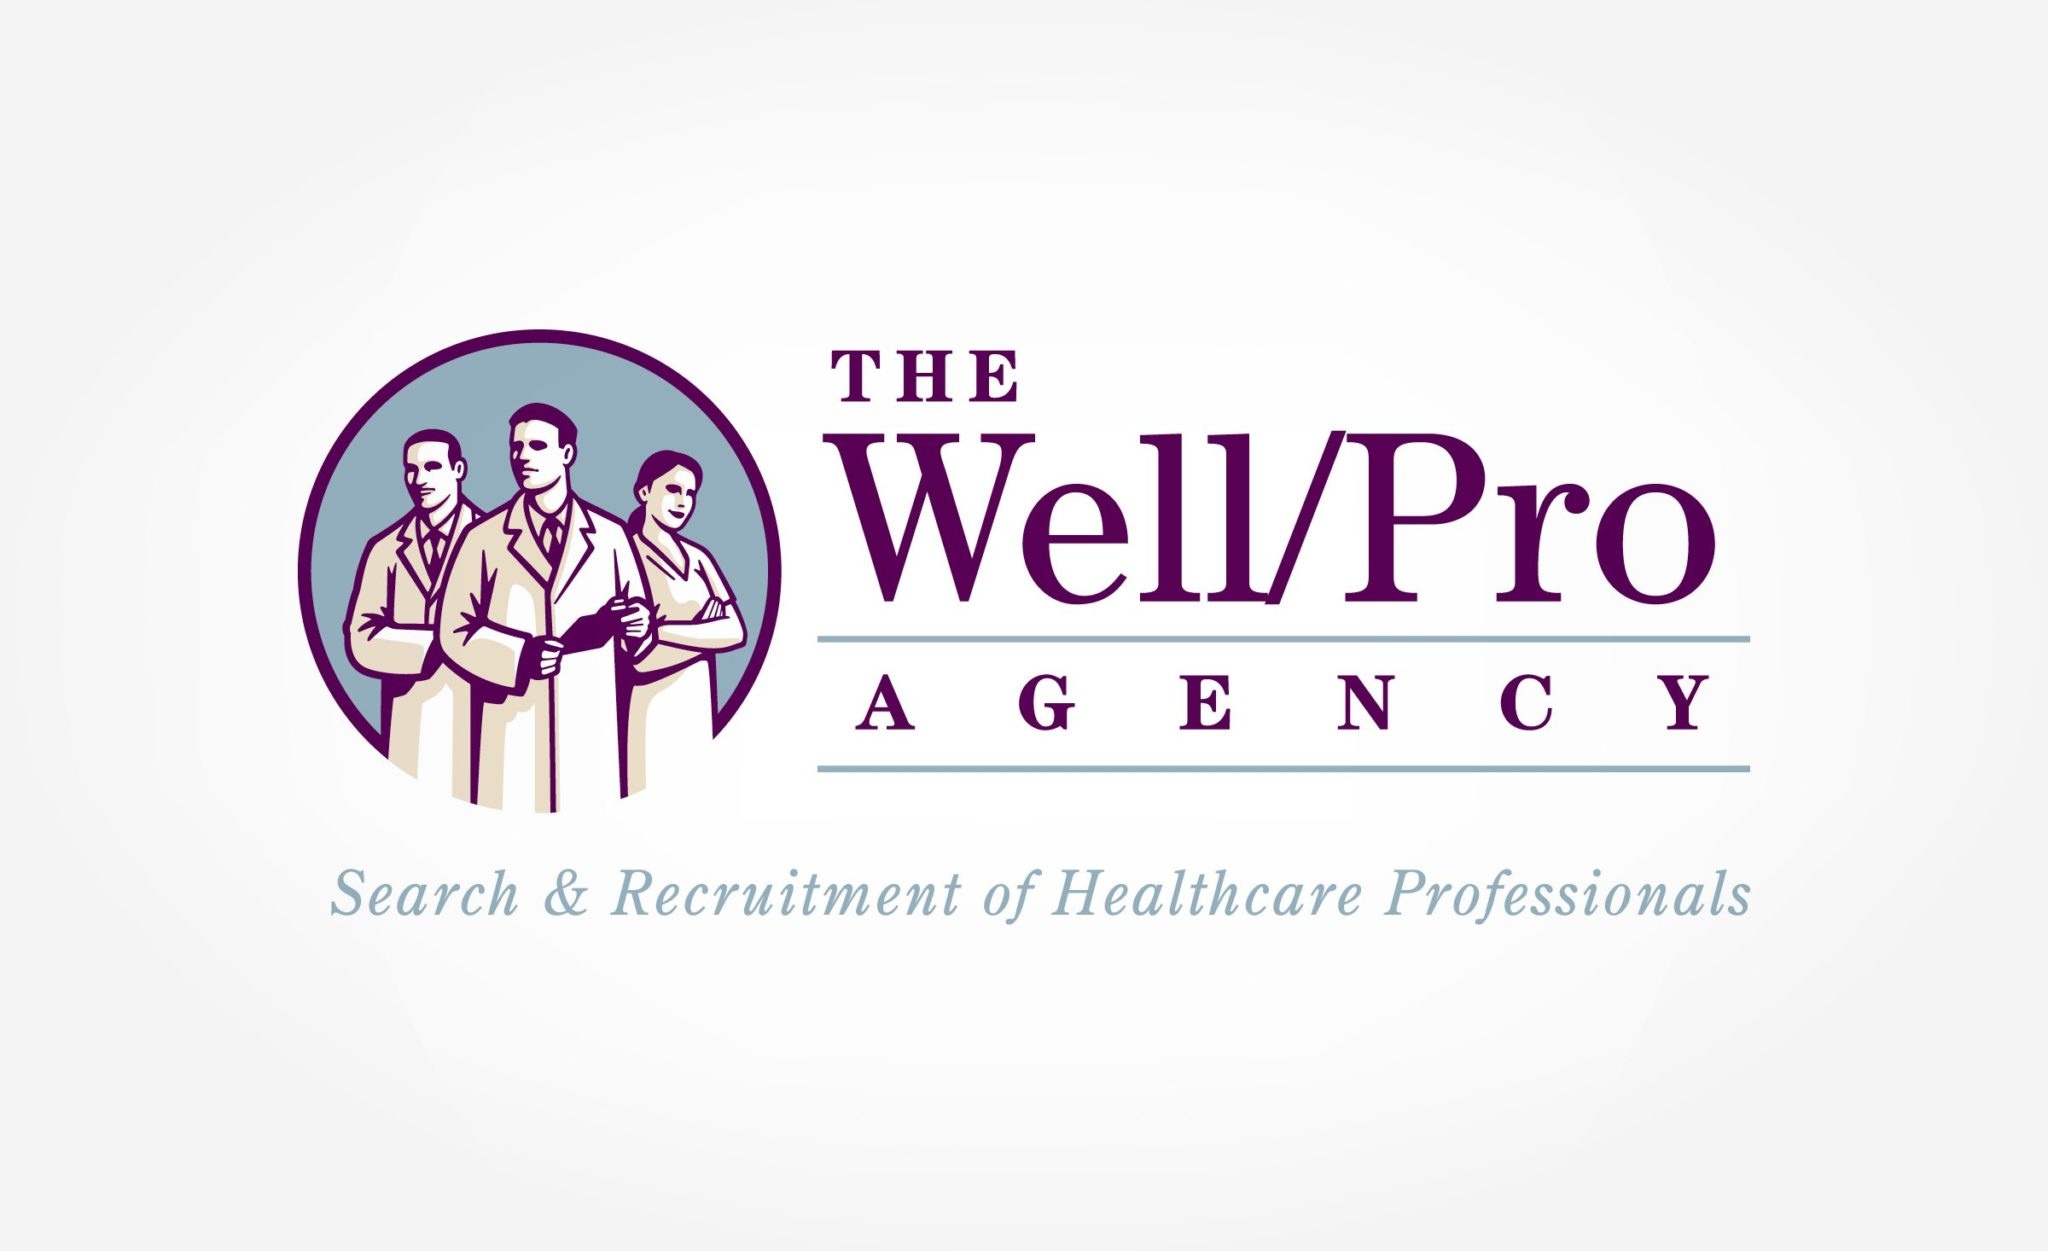 The Well Pro Agency